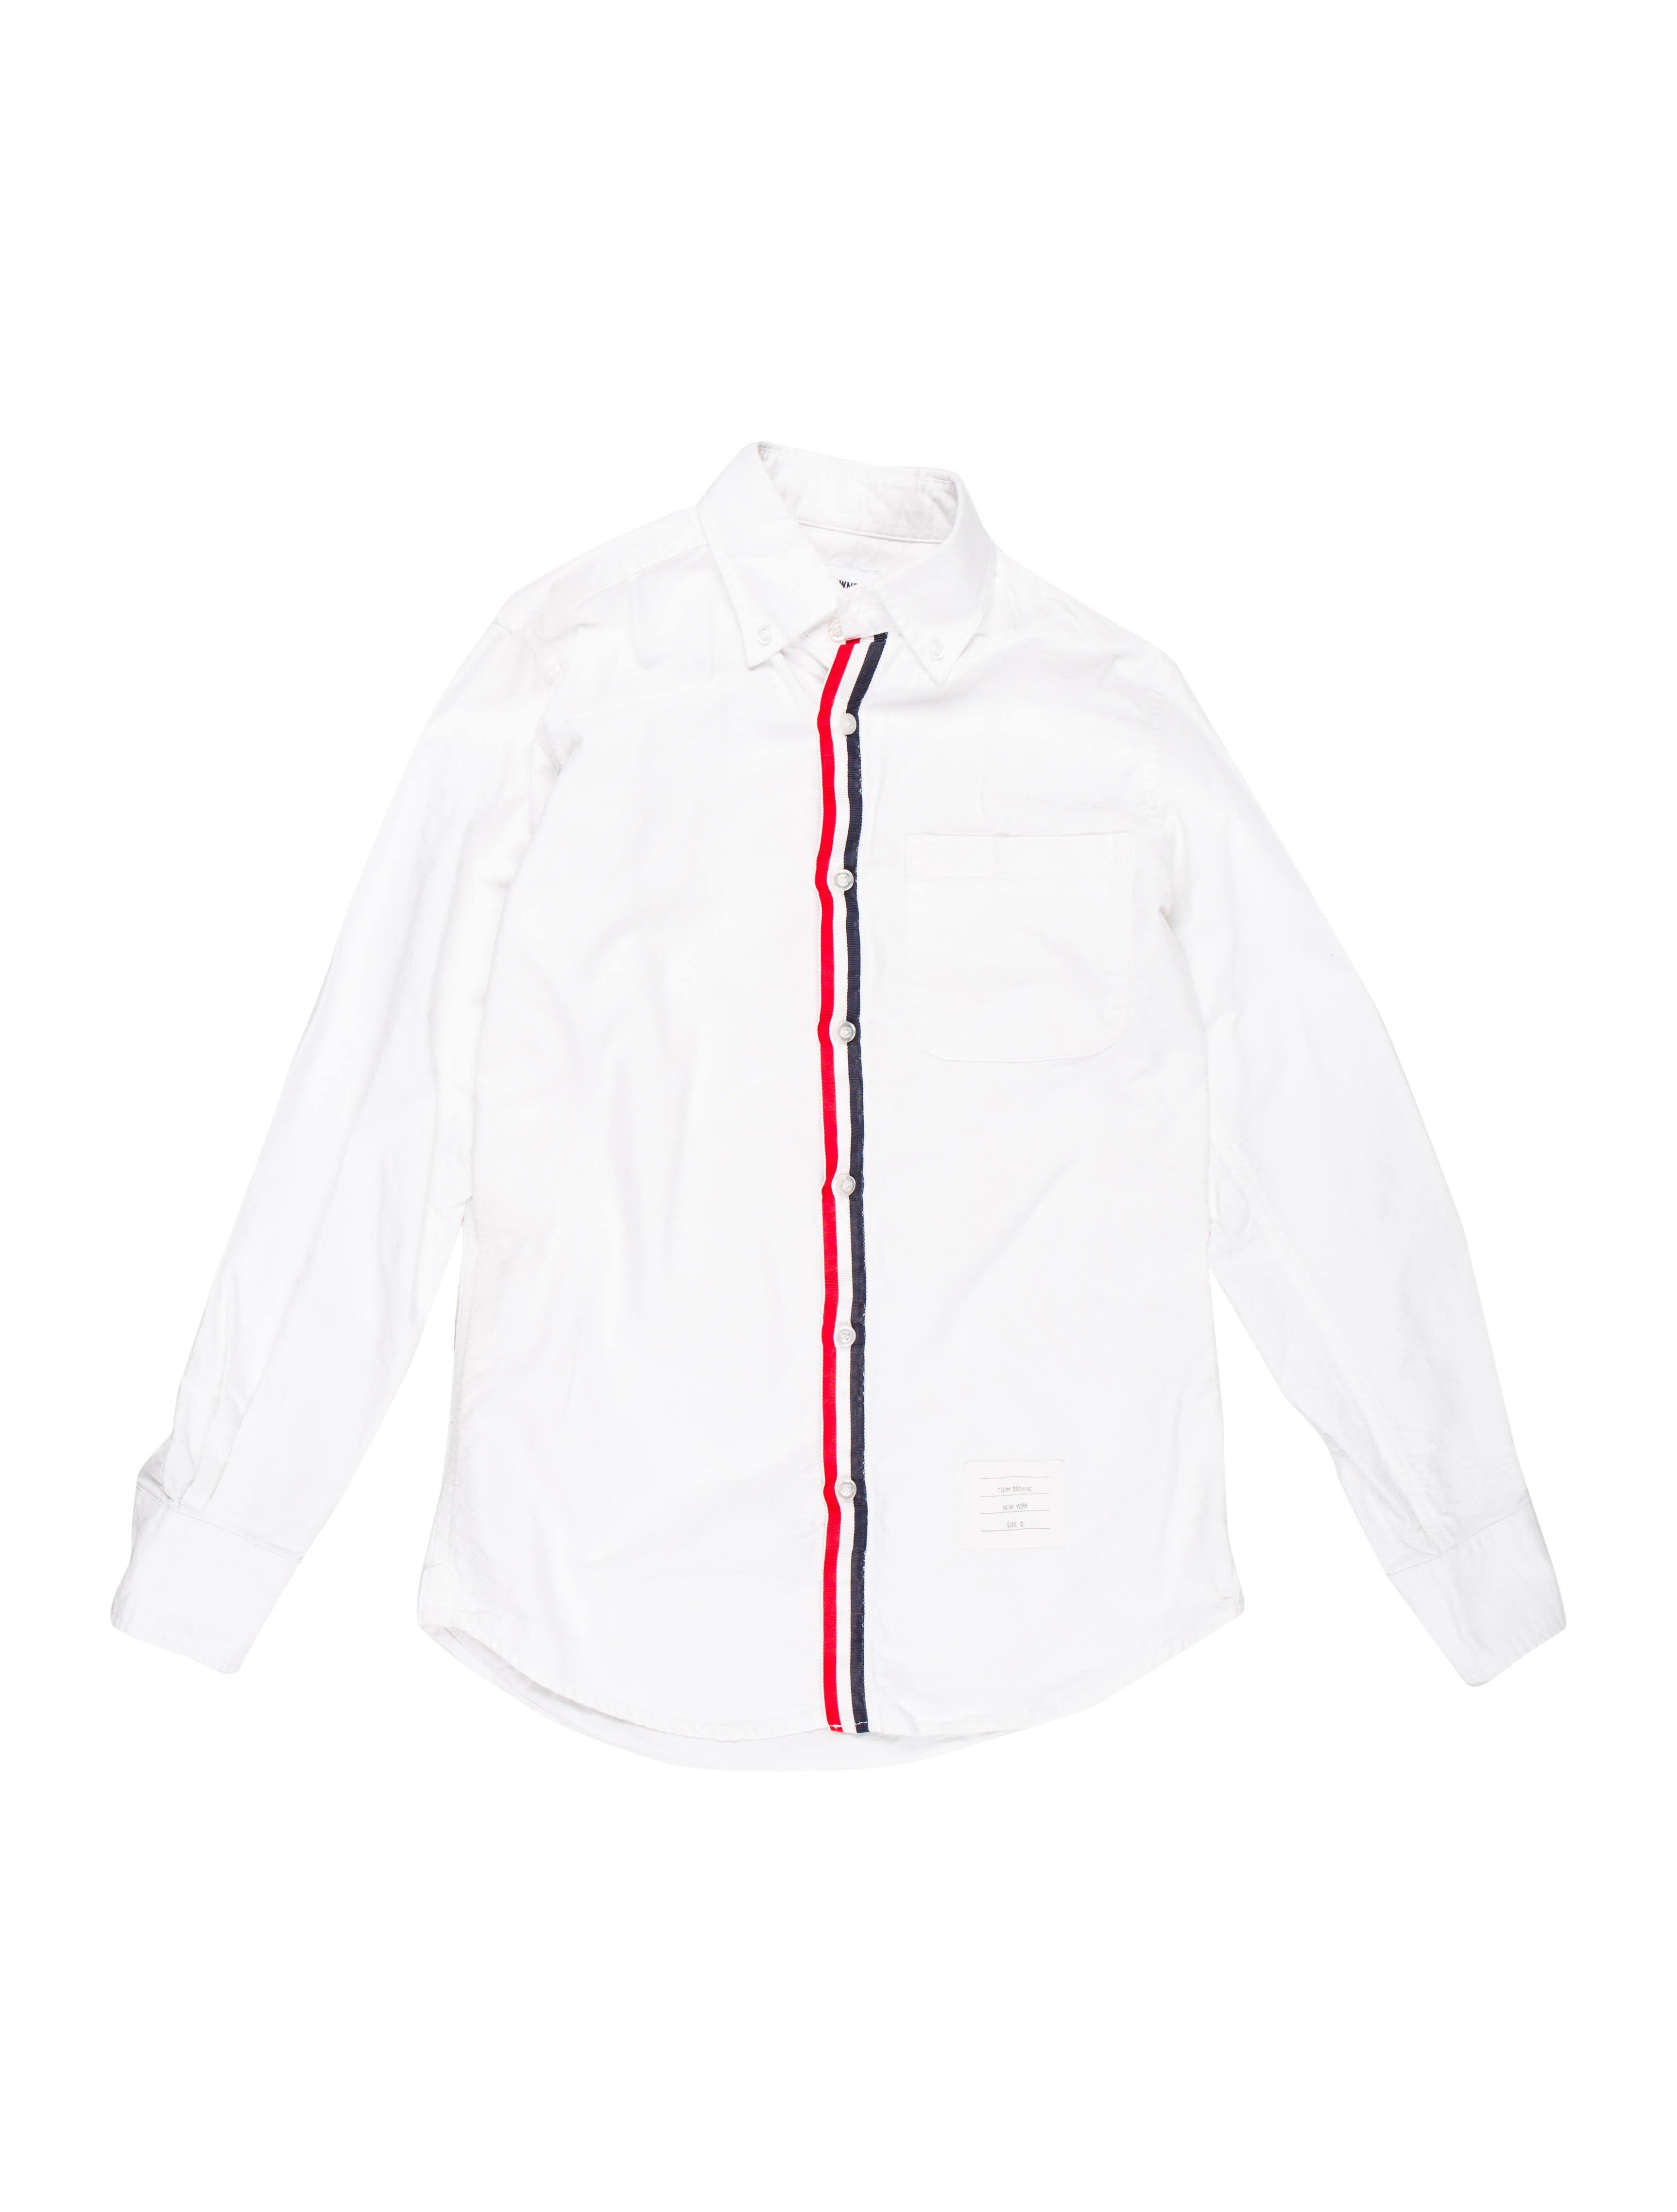 93bc701ce23 Thom Browne Striped Grosgrain-Accented Shirt - Clothing - THO25201 ...